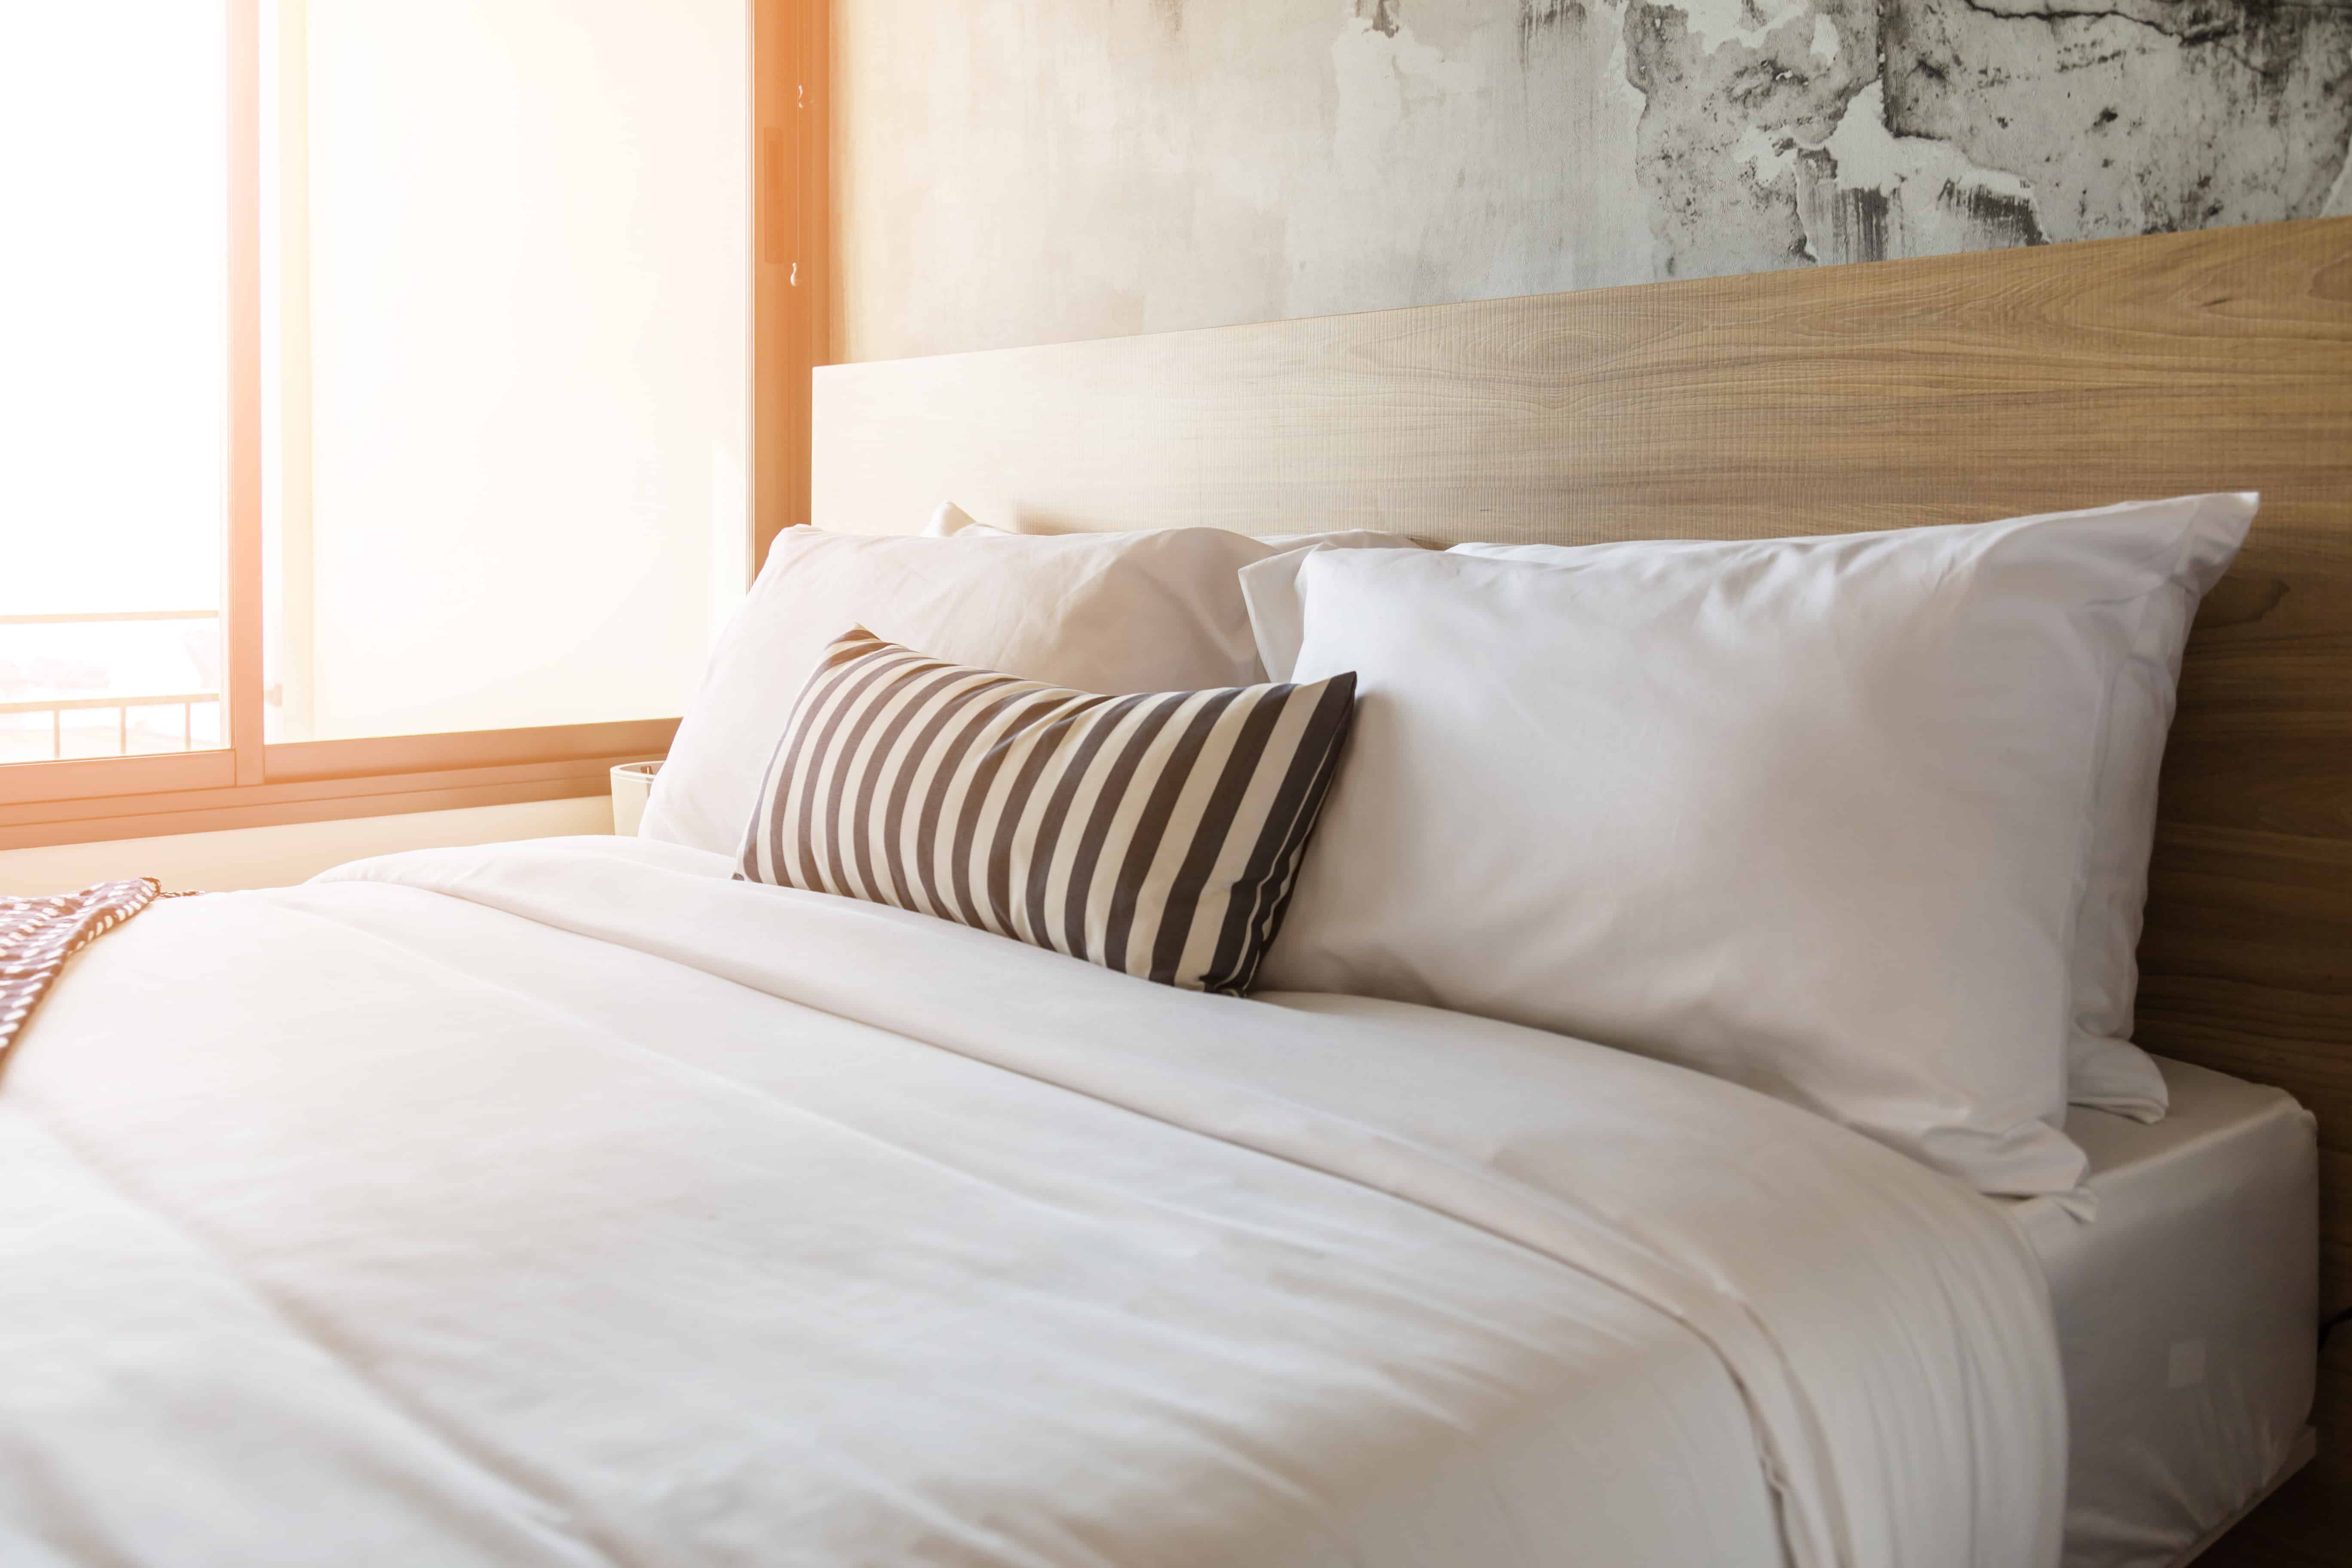 a well-made bed with white linens